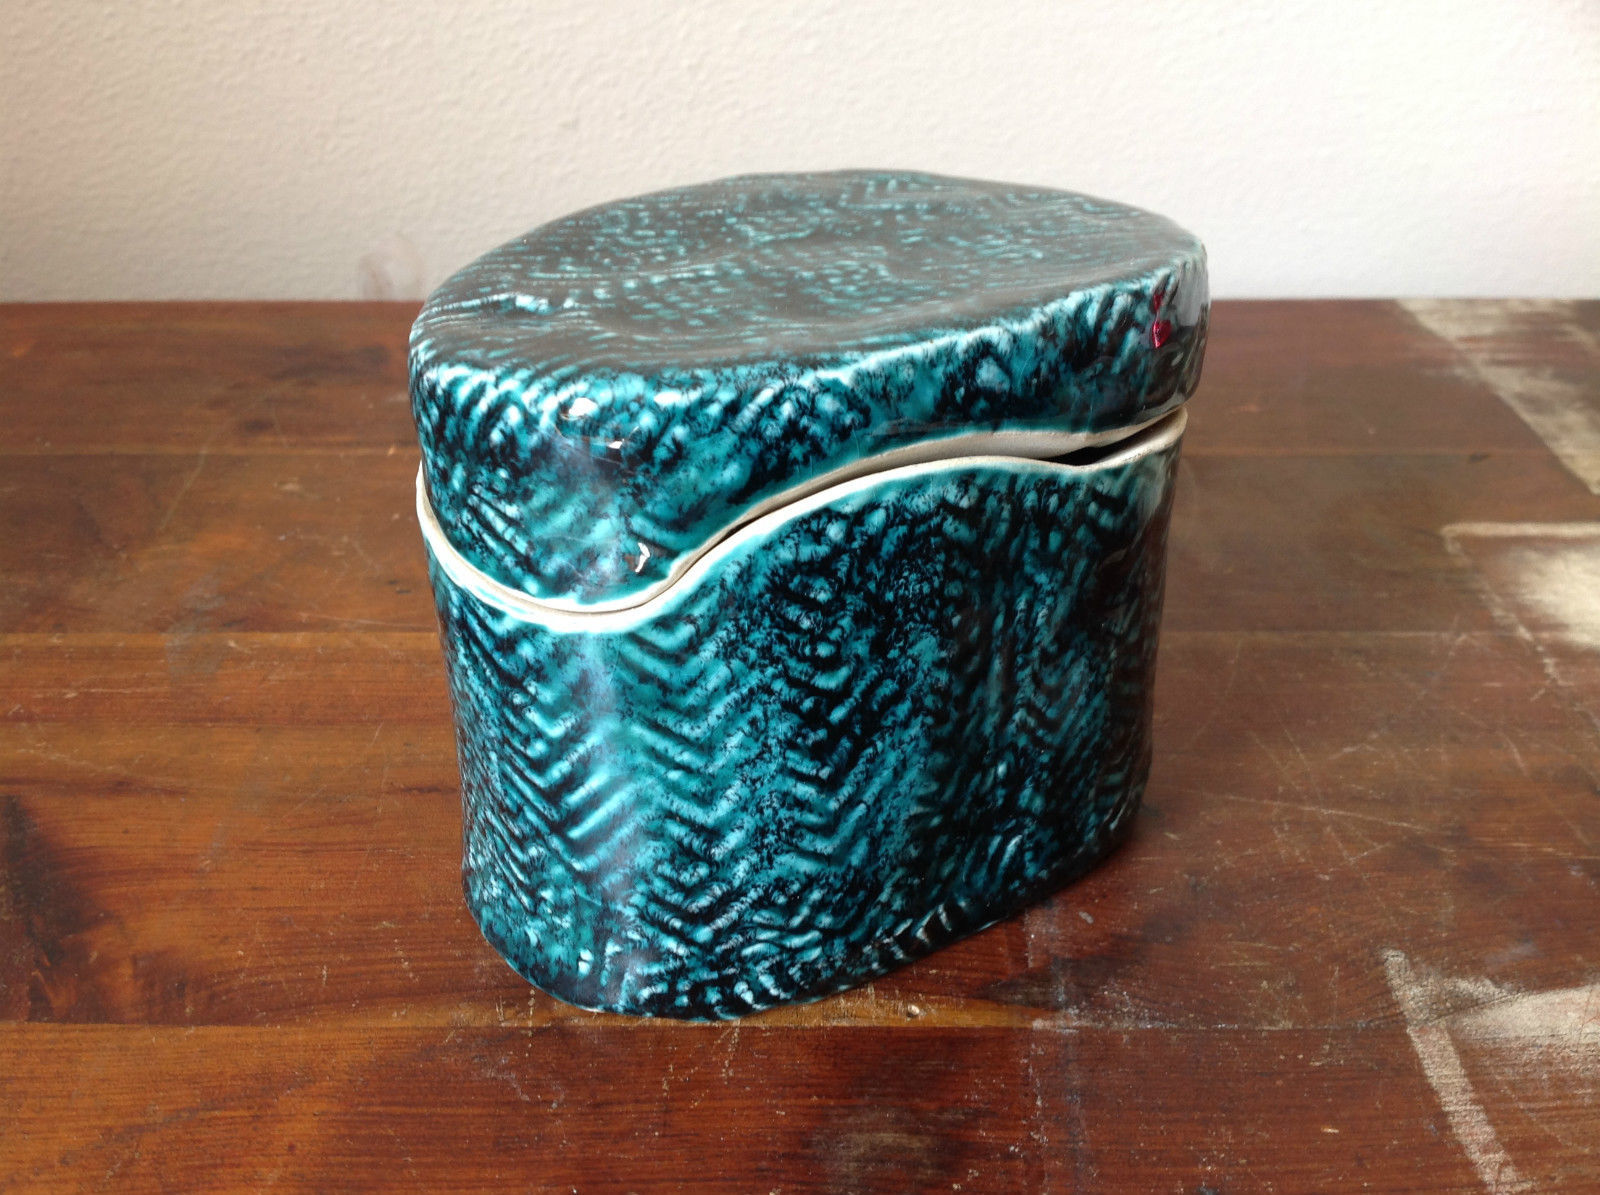 Ceramic Hand Crafted Artisan Jar Trinket Box Deep Sea Green 1999 SVSH